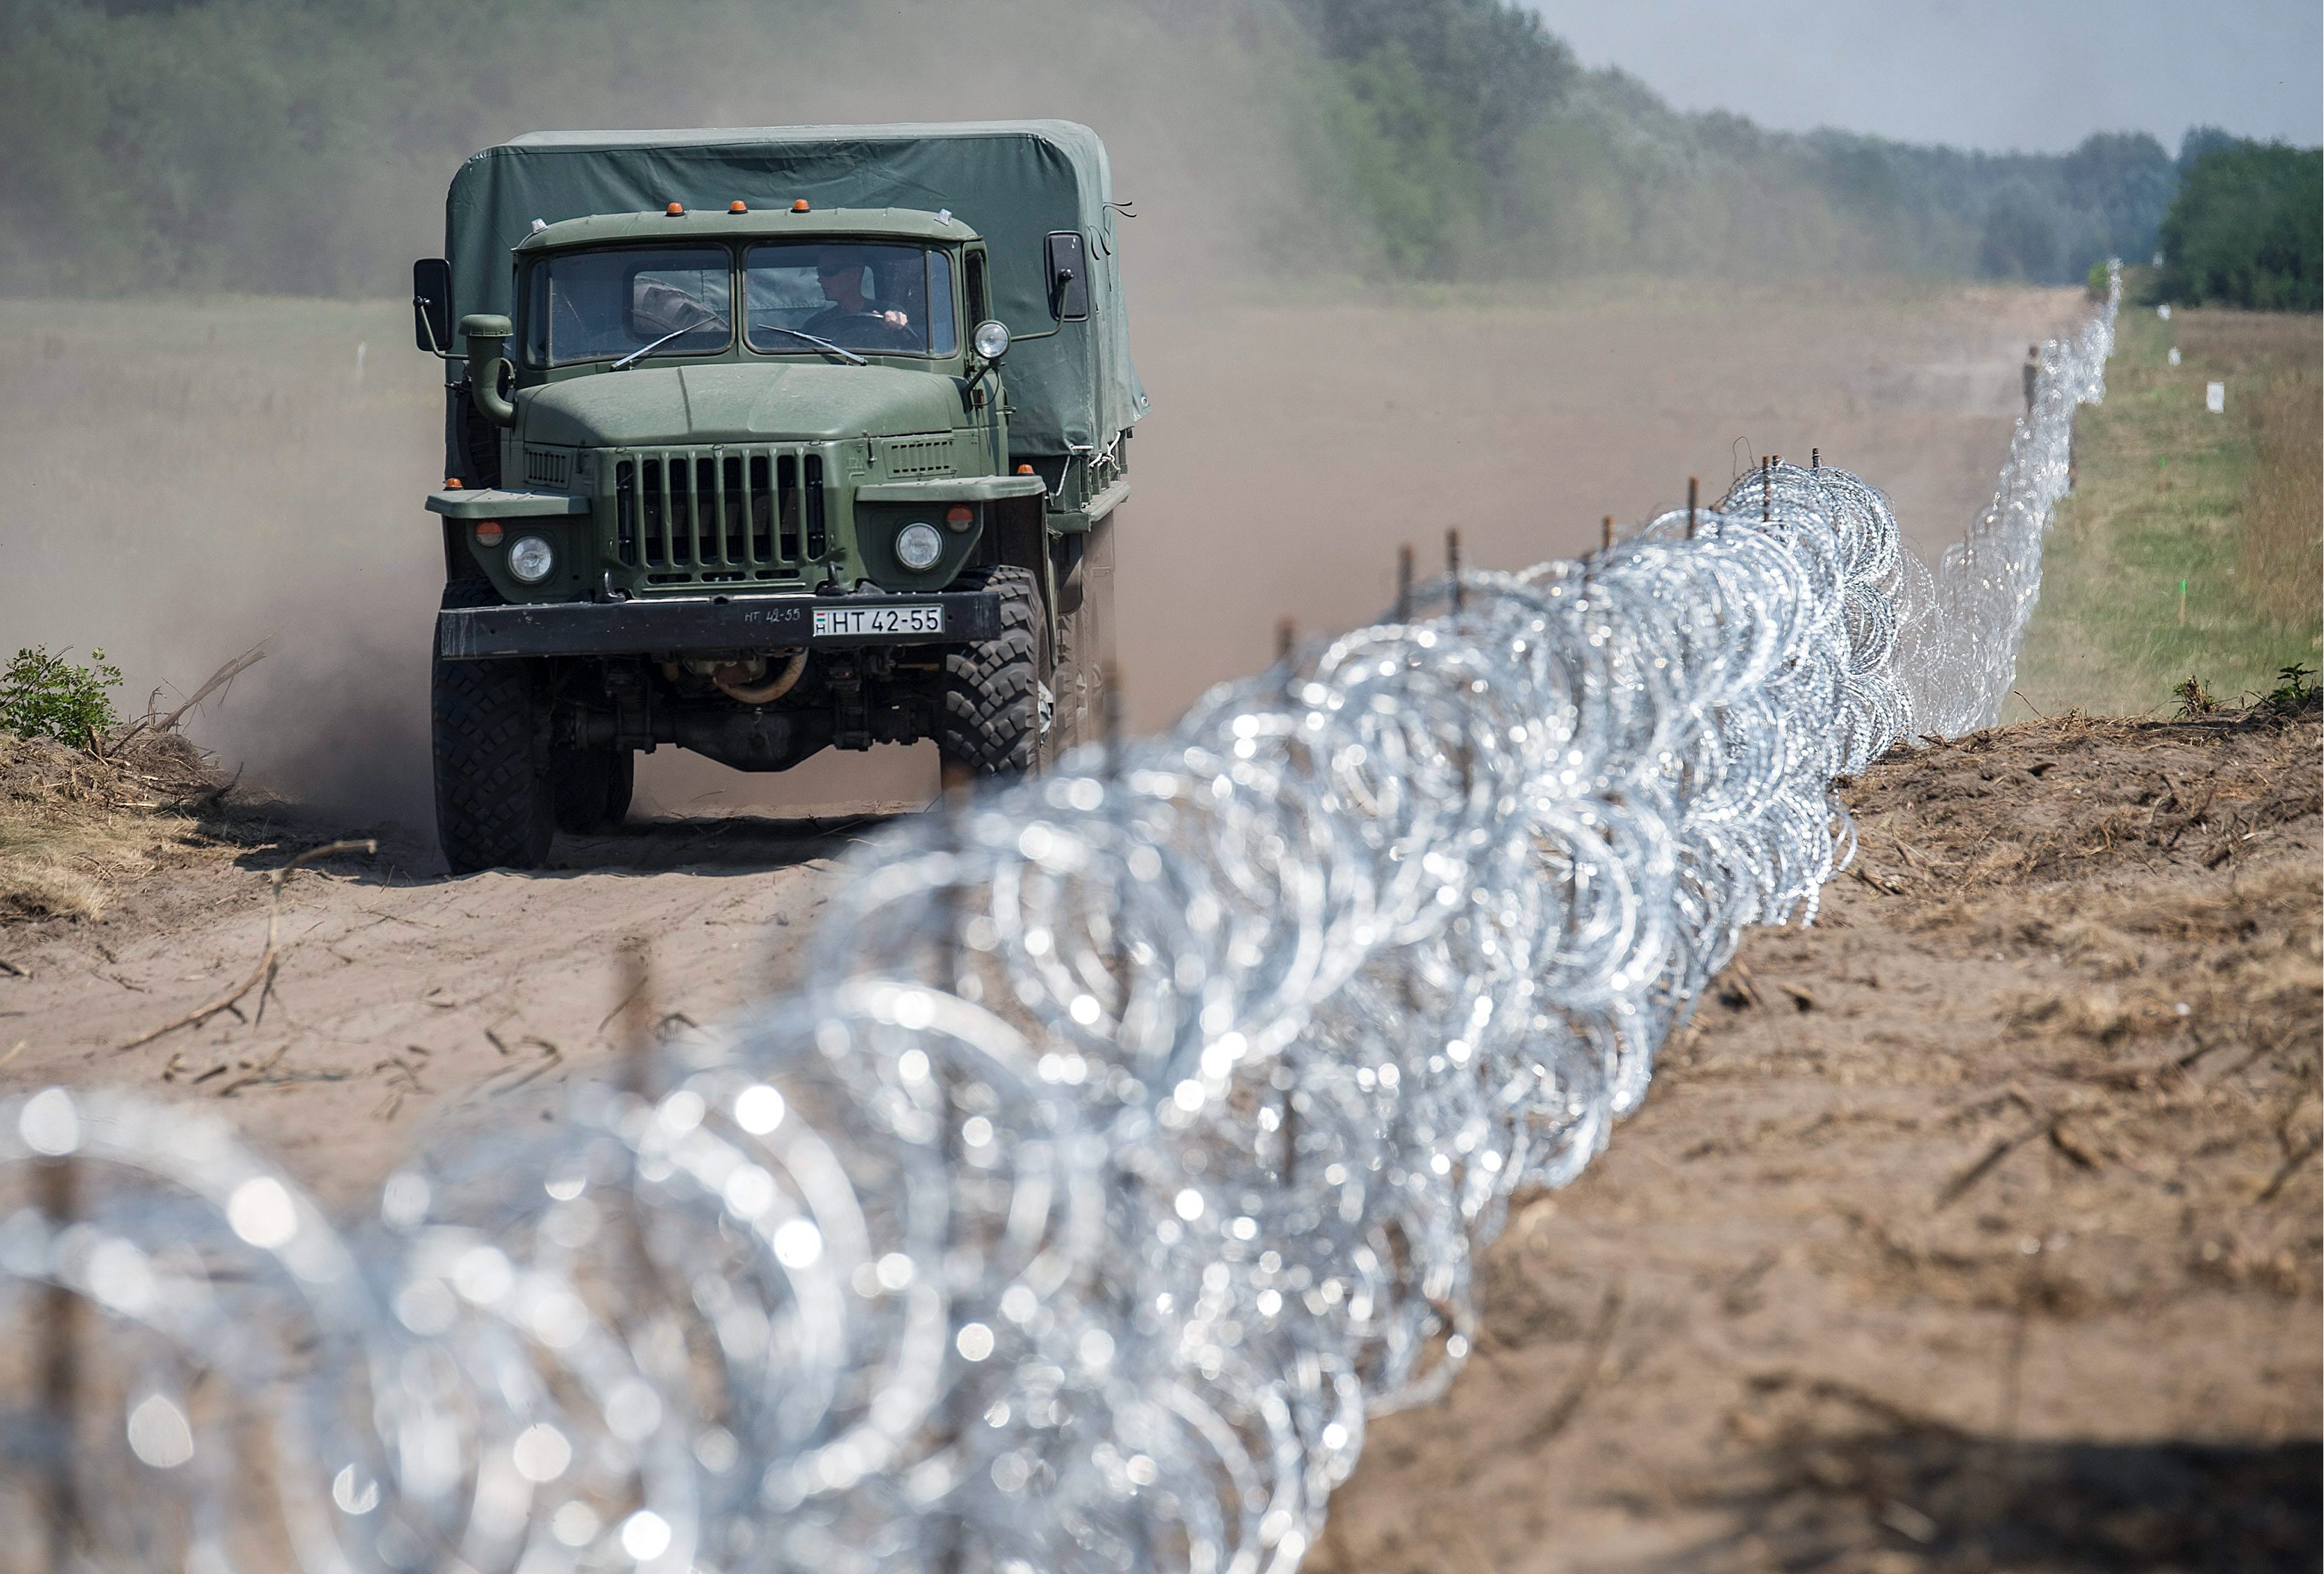 Donald Trump border wall proposal sparks controversy, but barriers ...